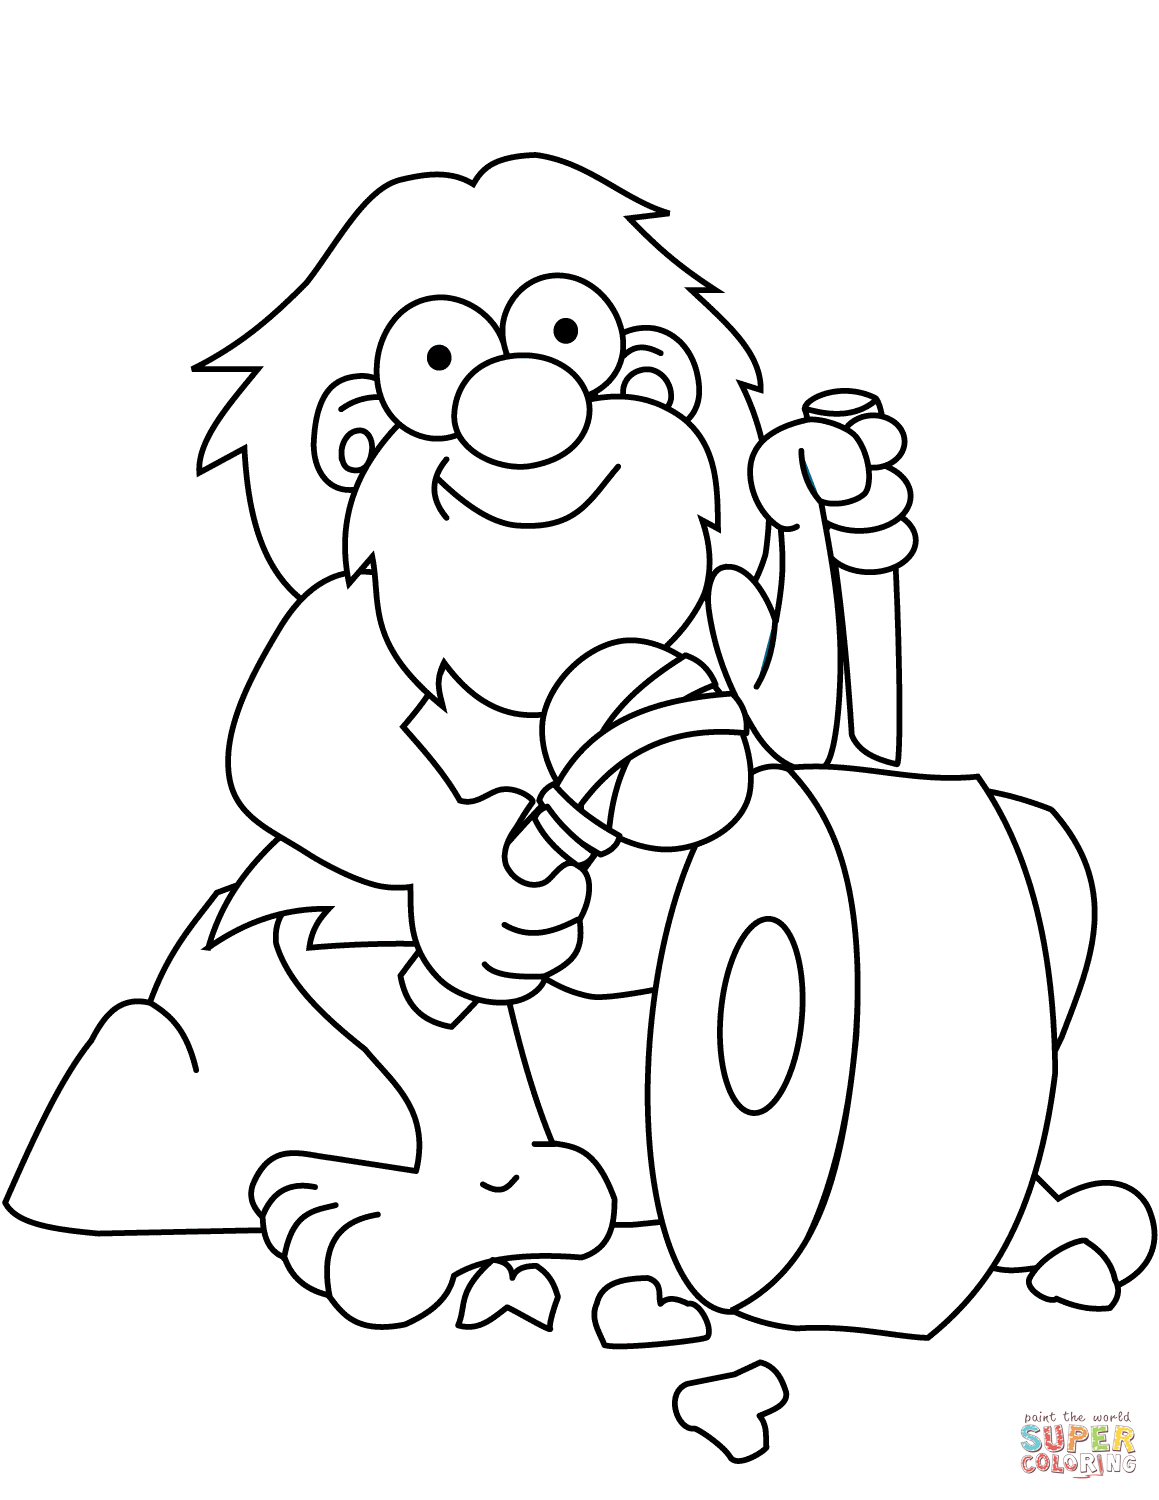 Caveman Sharpen Axe And Knife Coloring Page Free Printable Coloring Home